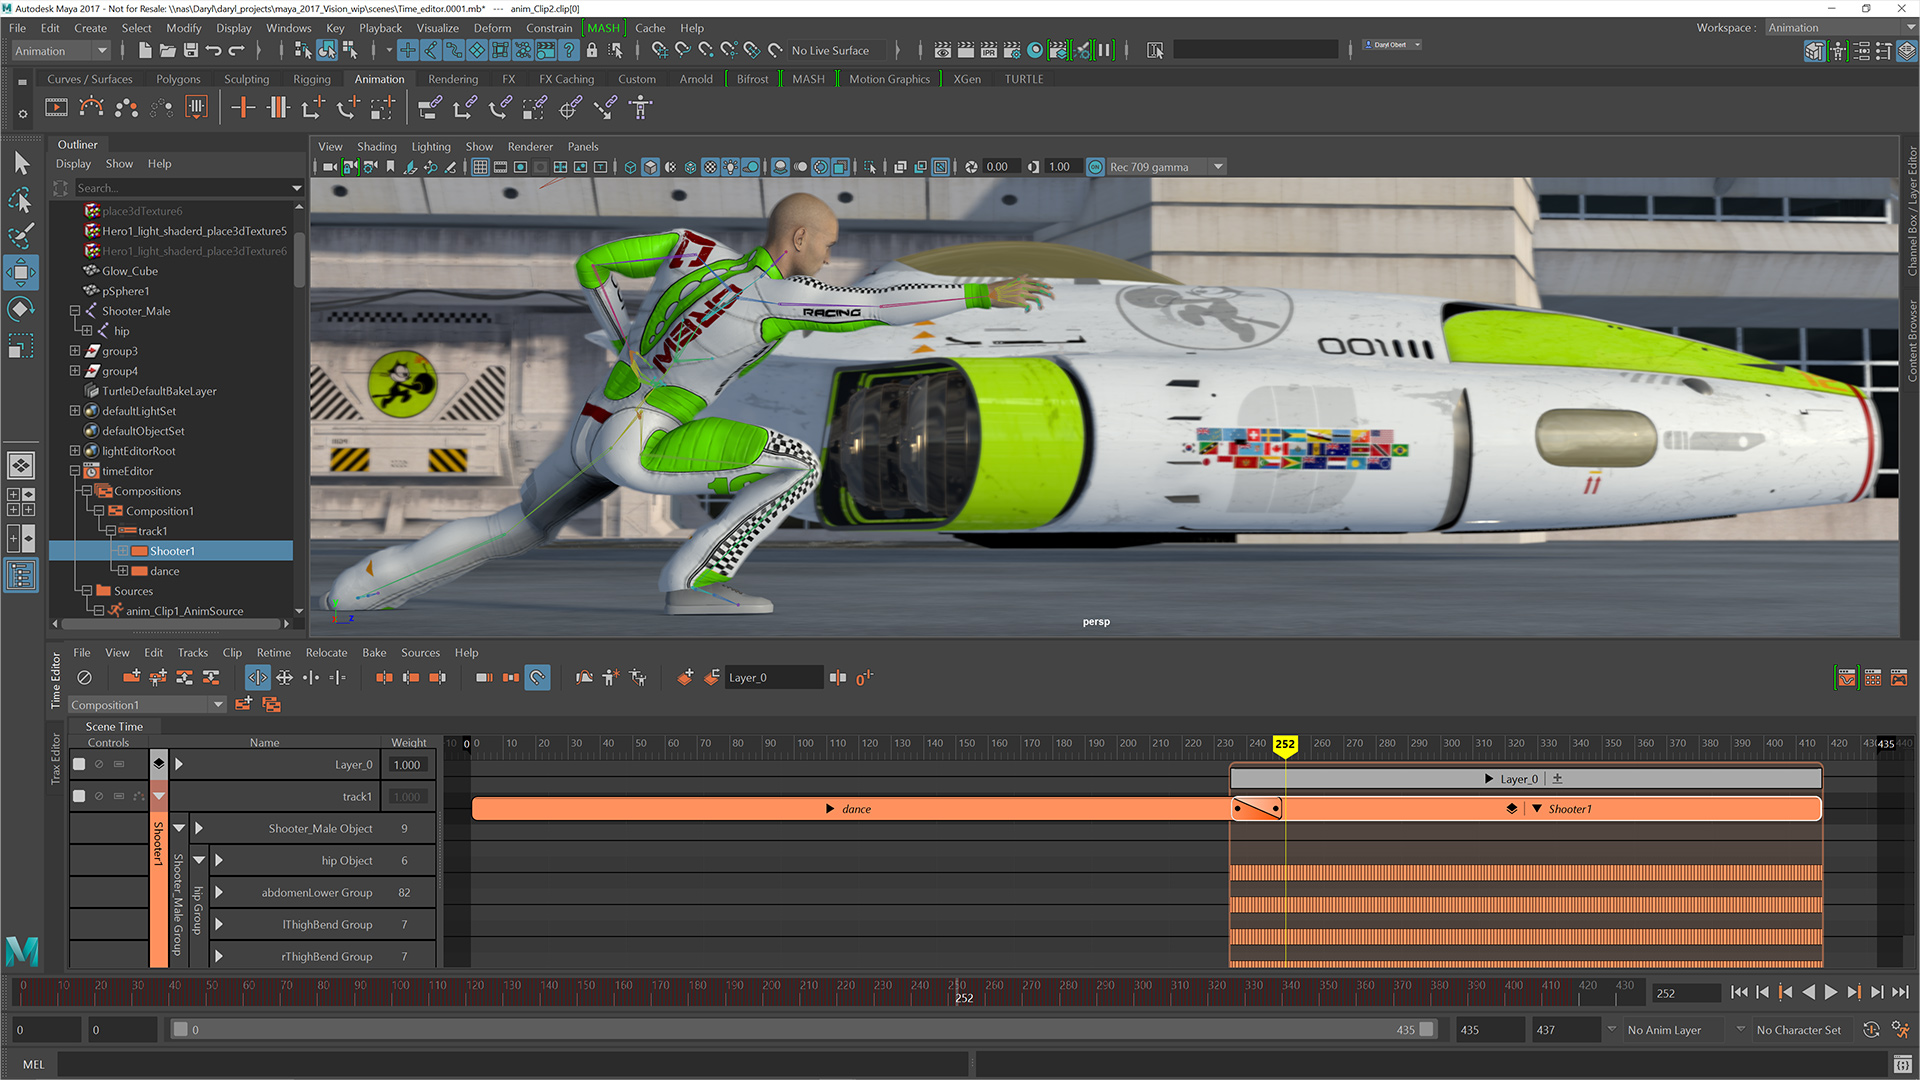 autodesk maya animation workflow large